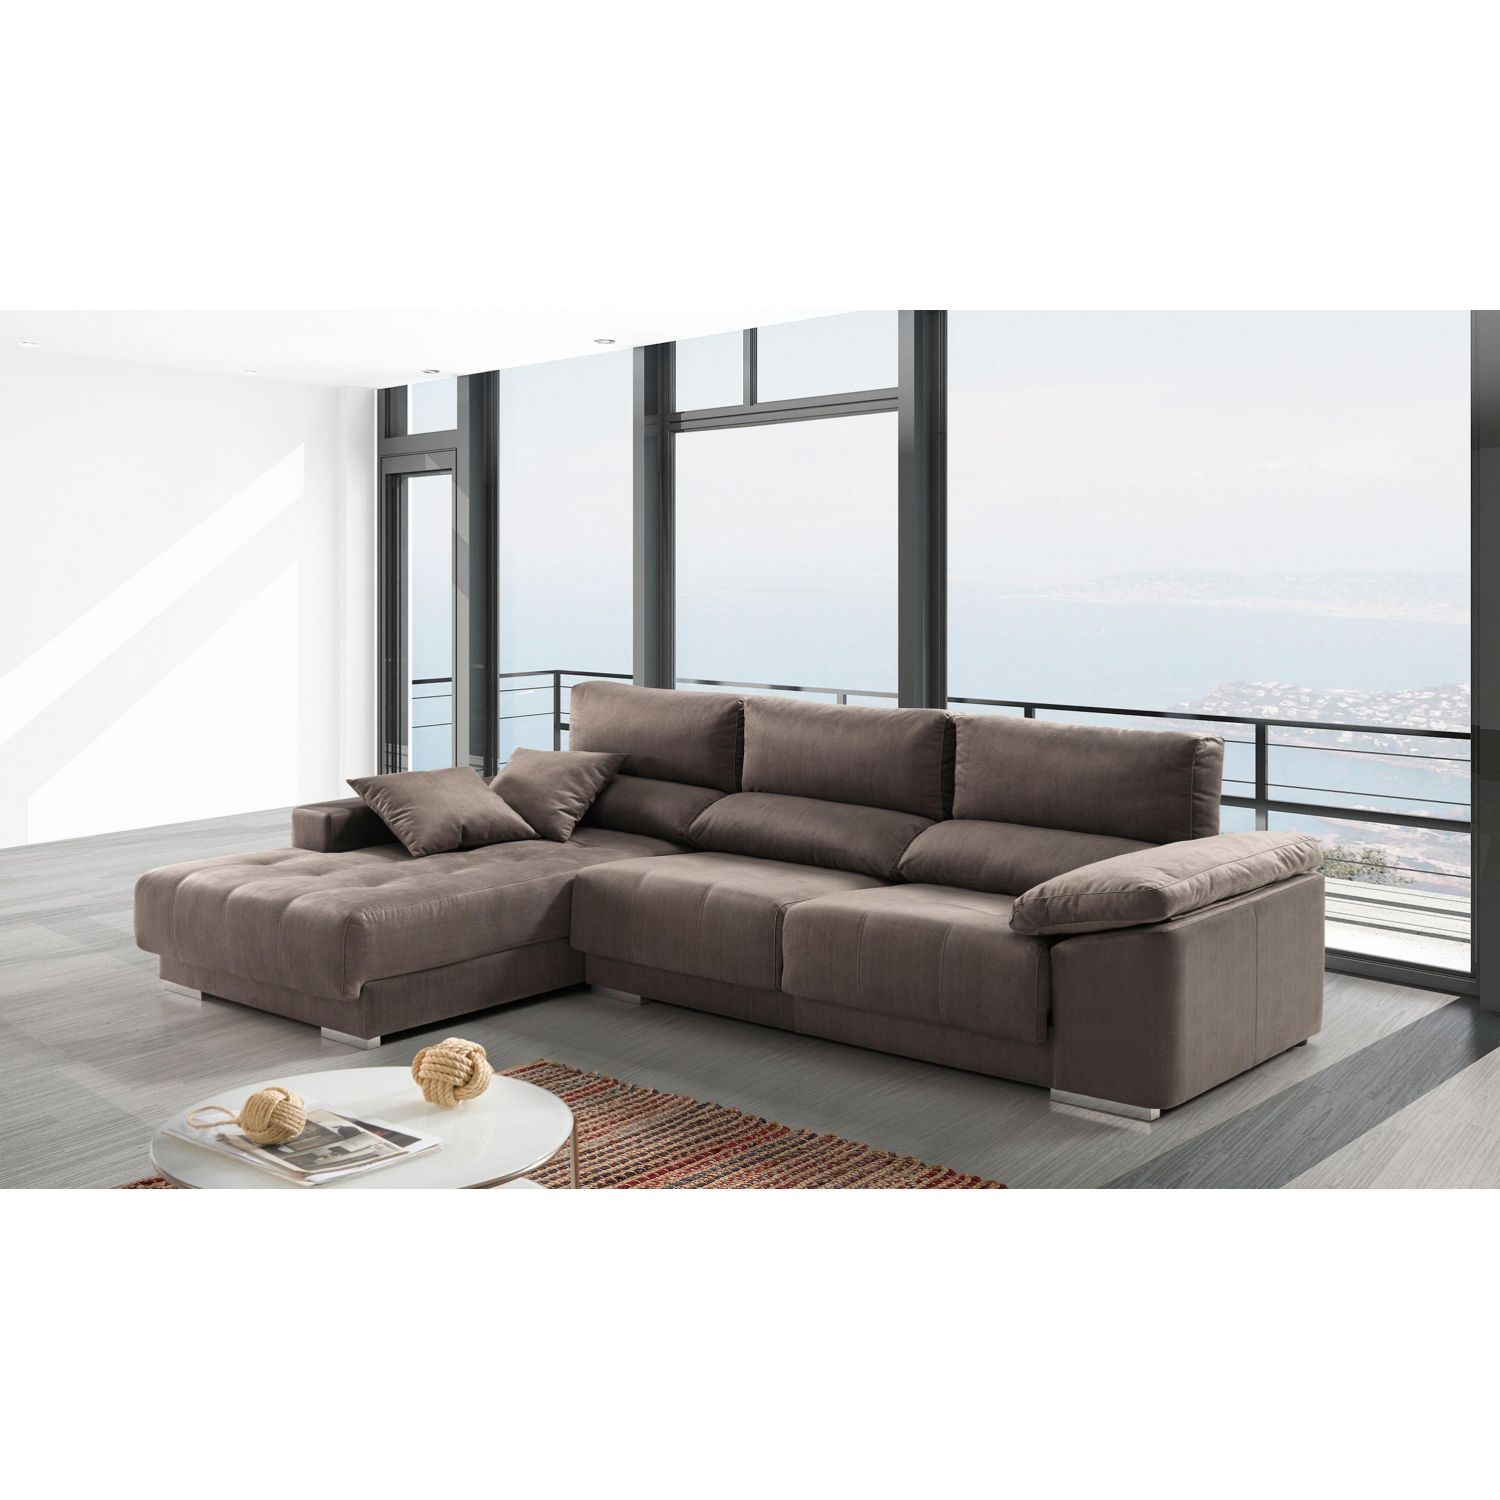 Chaislongue alta gama extensible reclinable anti manchas - Sofas alta gama ...